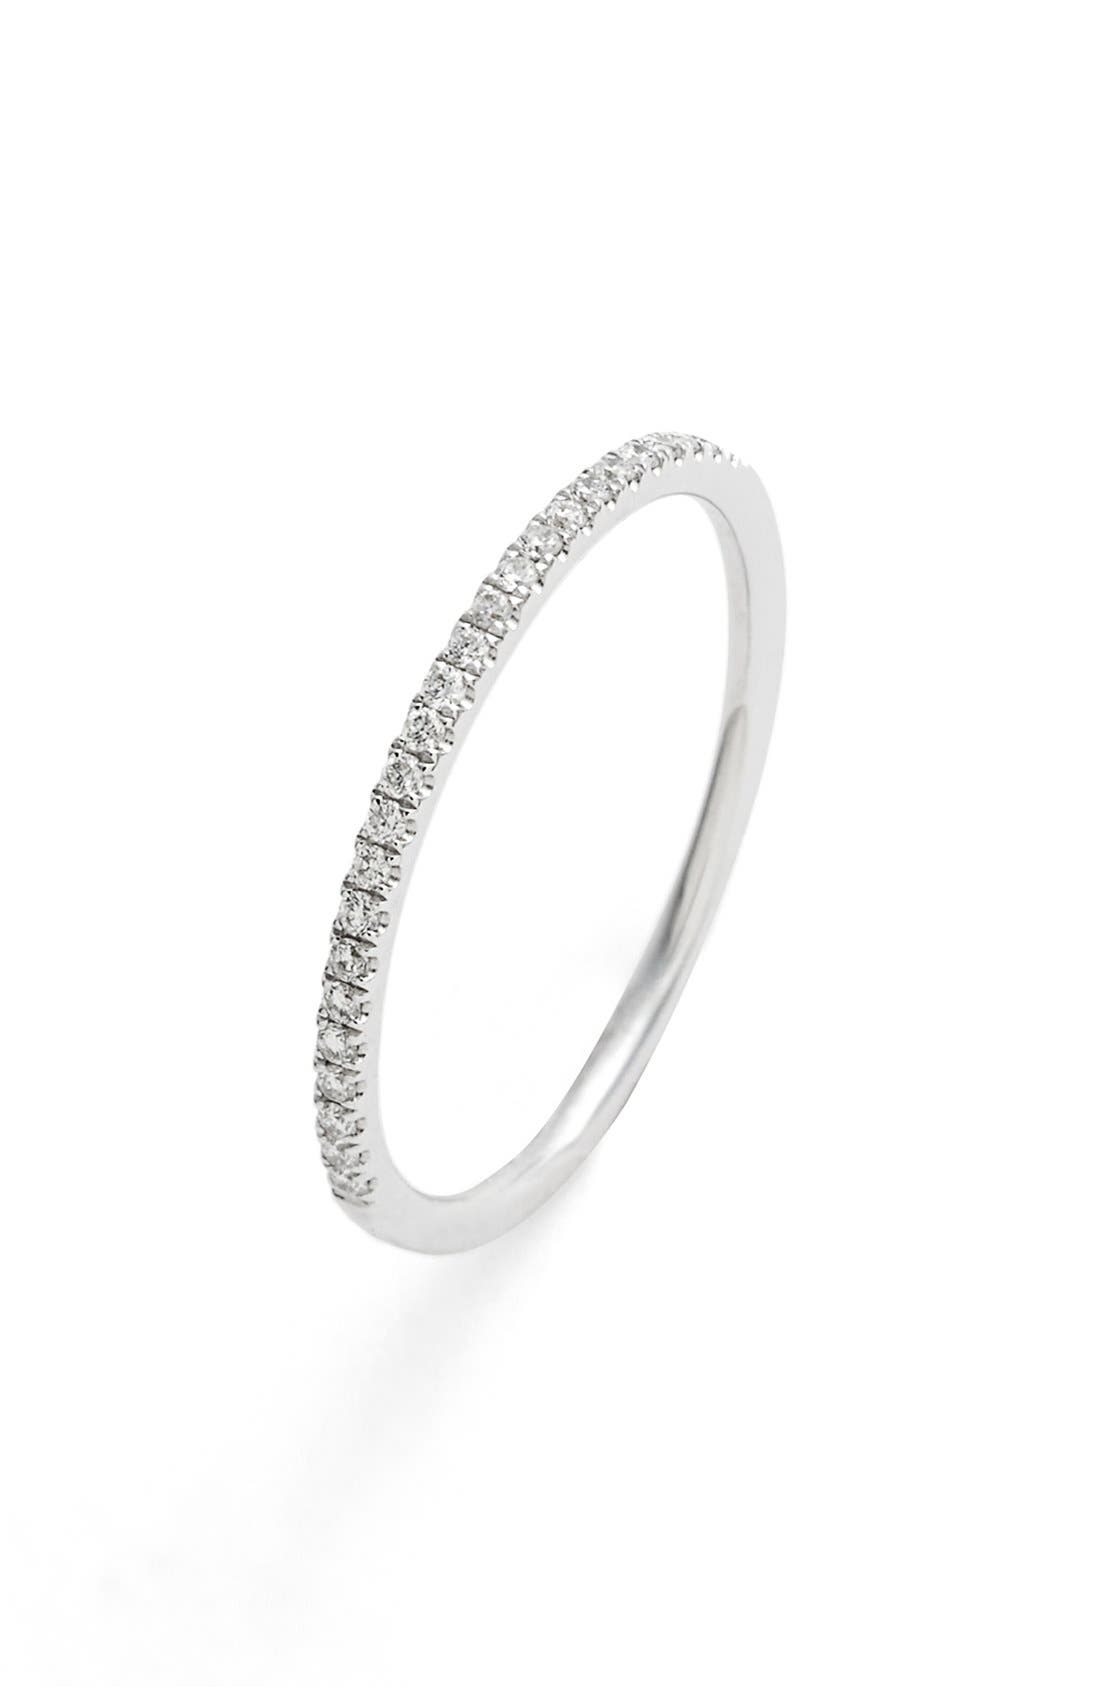 'Stackable' Straight Diamond Band Ring,                             Alternate thumbnail 2, color,                             White Gold